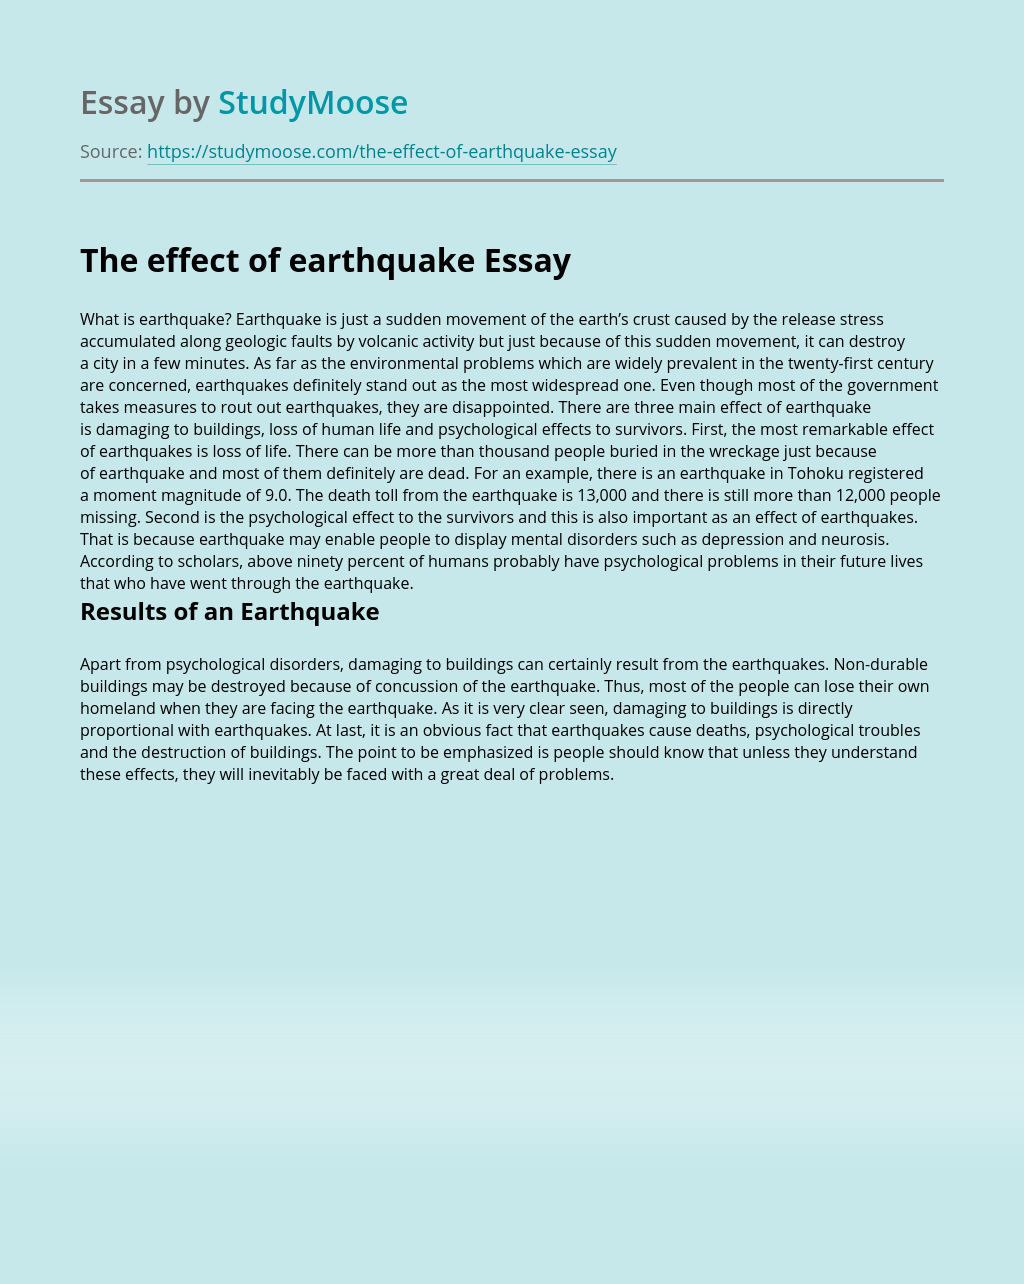 The effect of earthquake